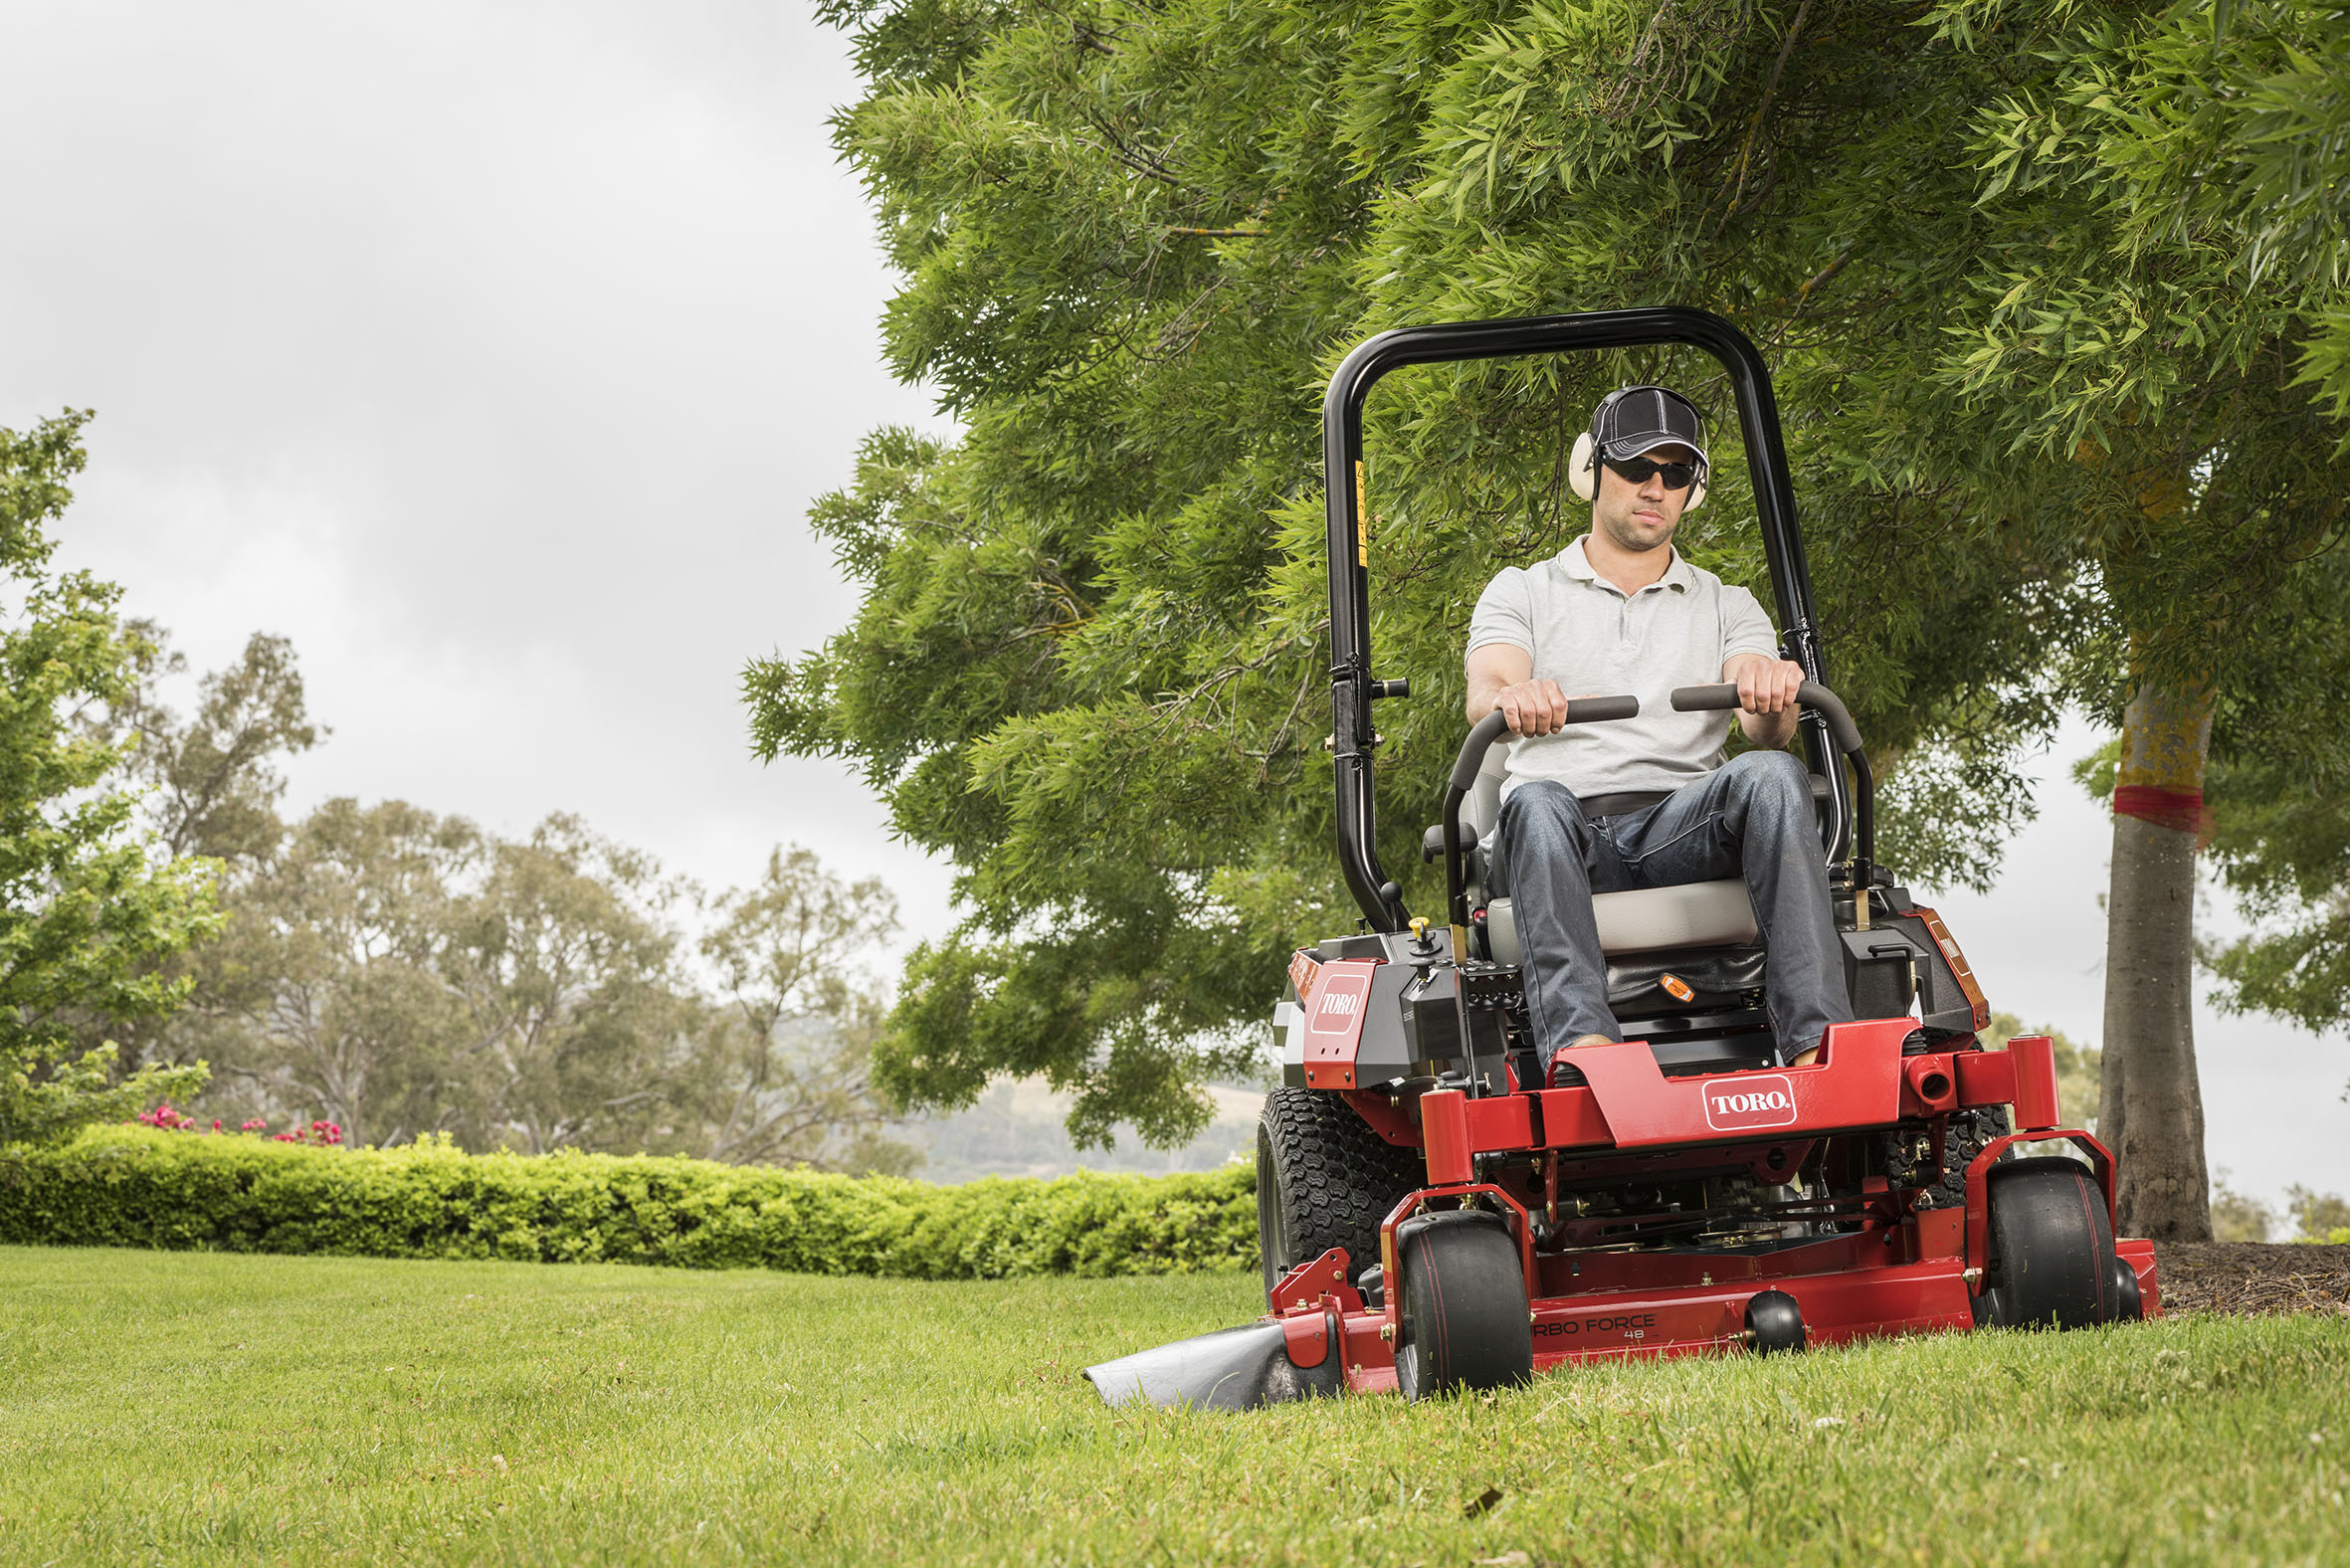 Introducing the new Toro Titan® HD mower with tool carrying versatility